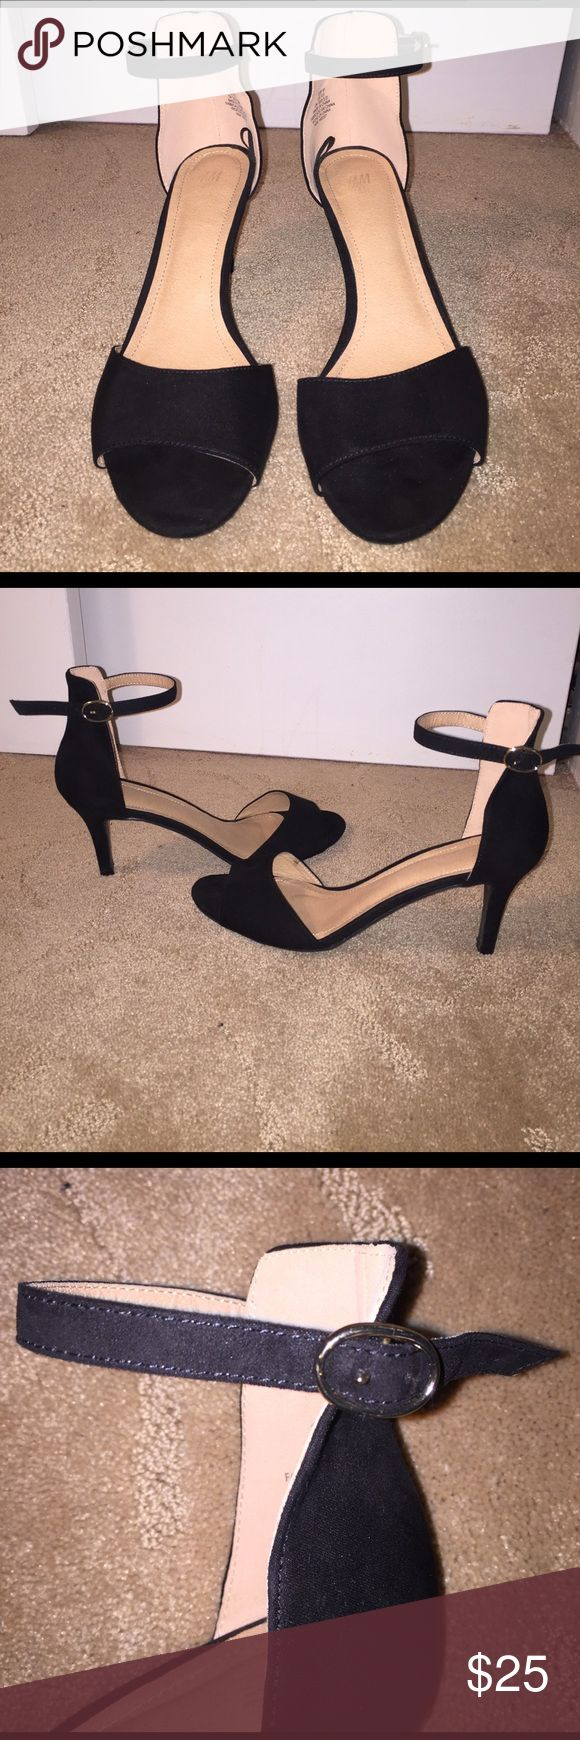 H&M Black Peep Toe Heels Suede Black Heels with adjustable strap (pictured) in great condition!! H&M Shoes Heels